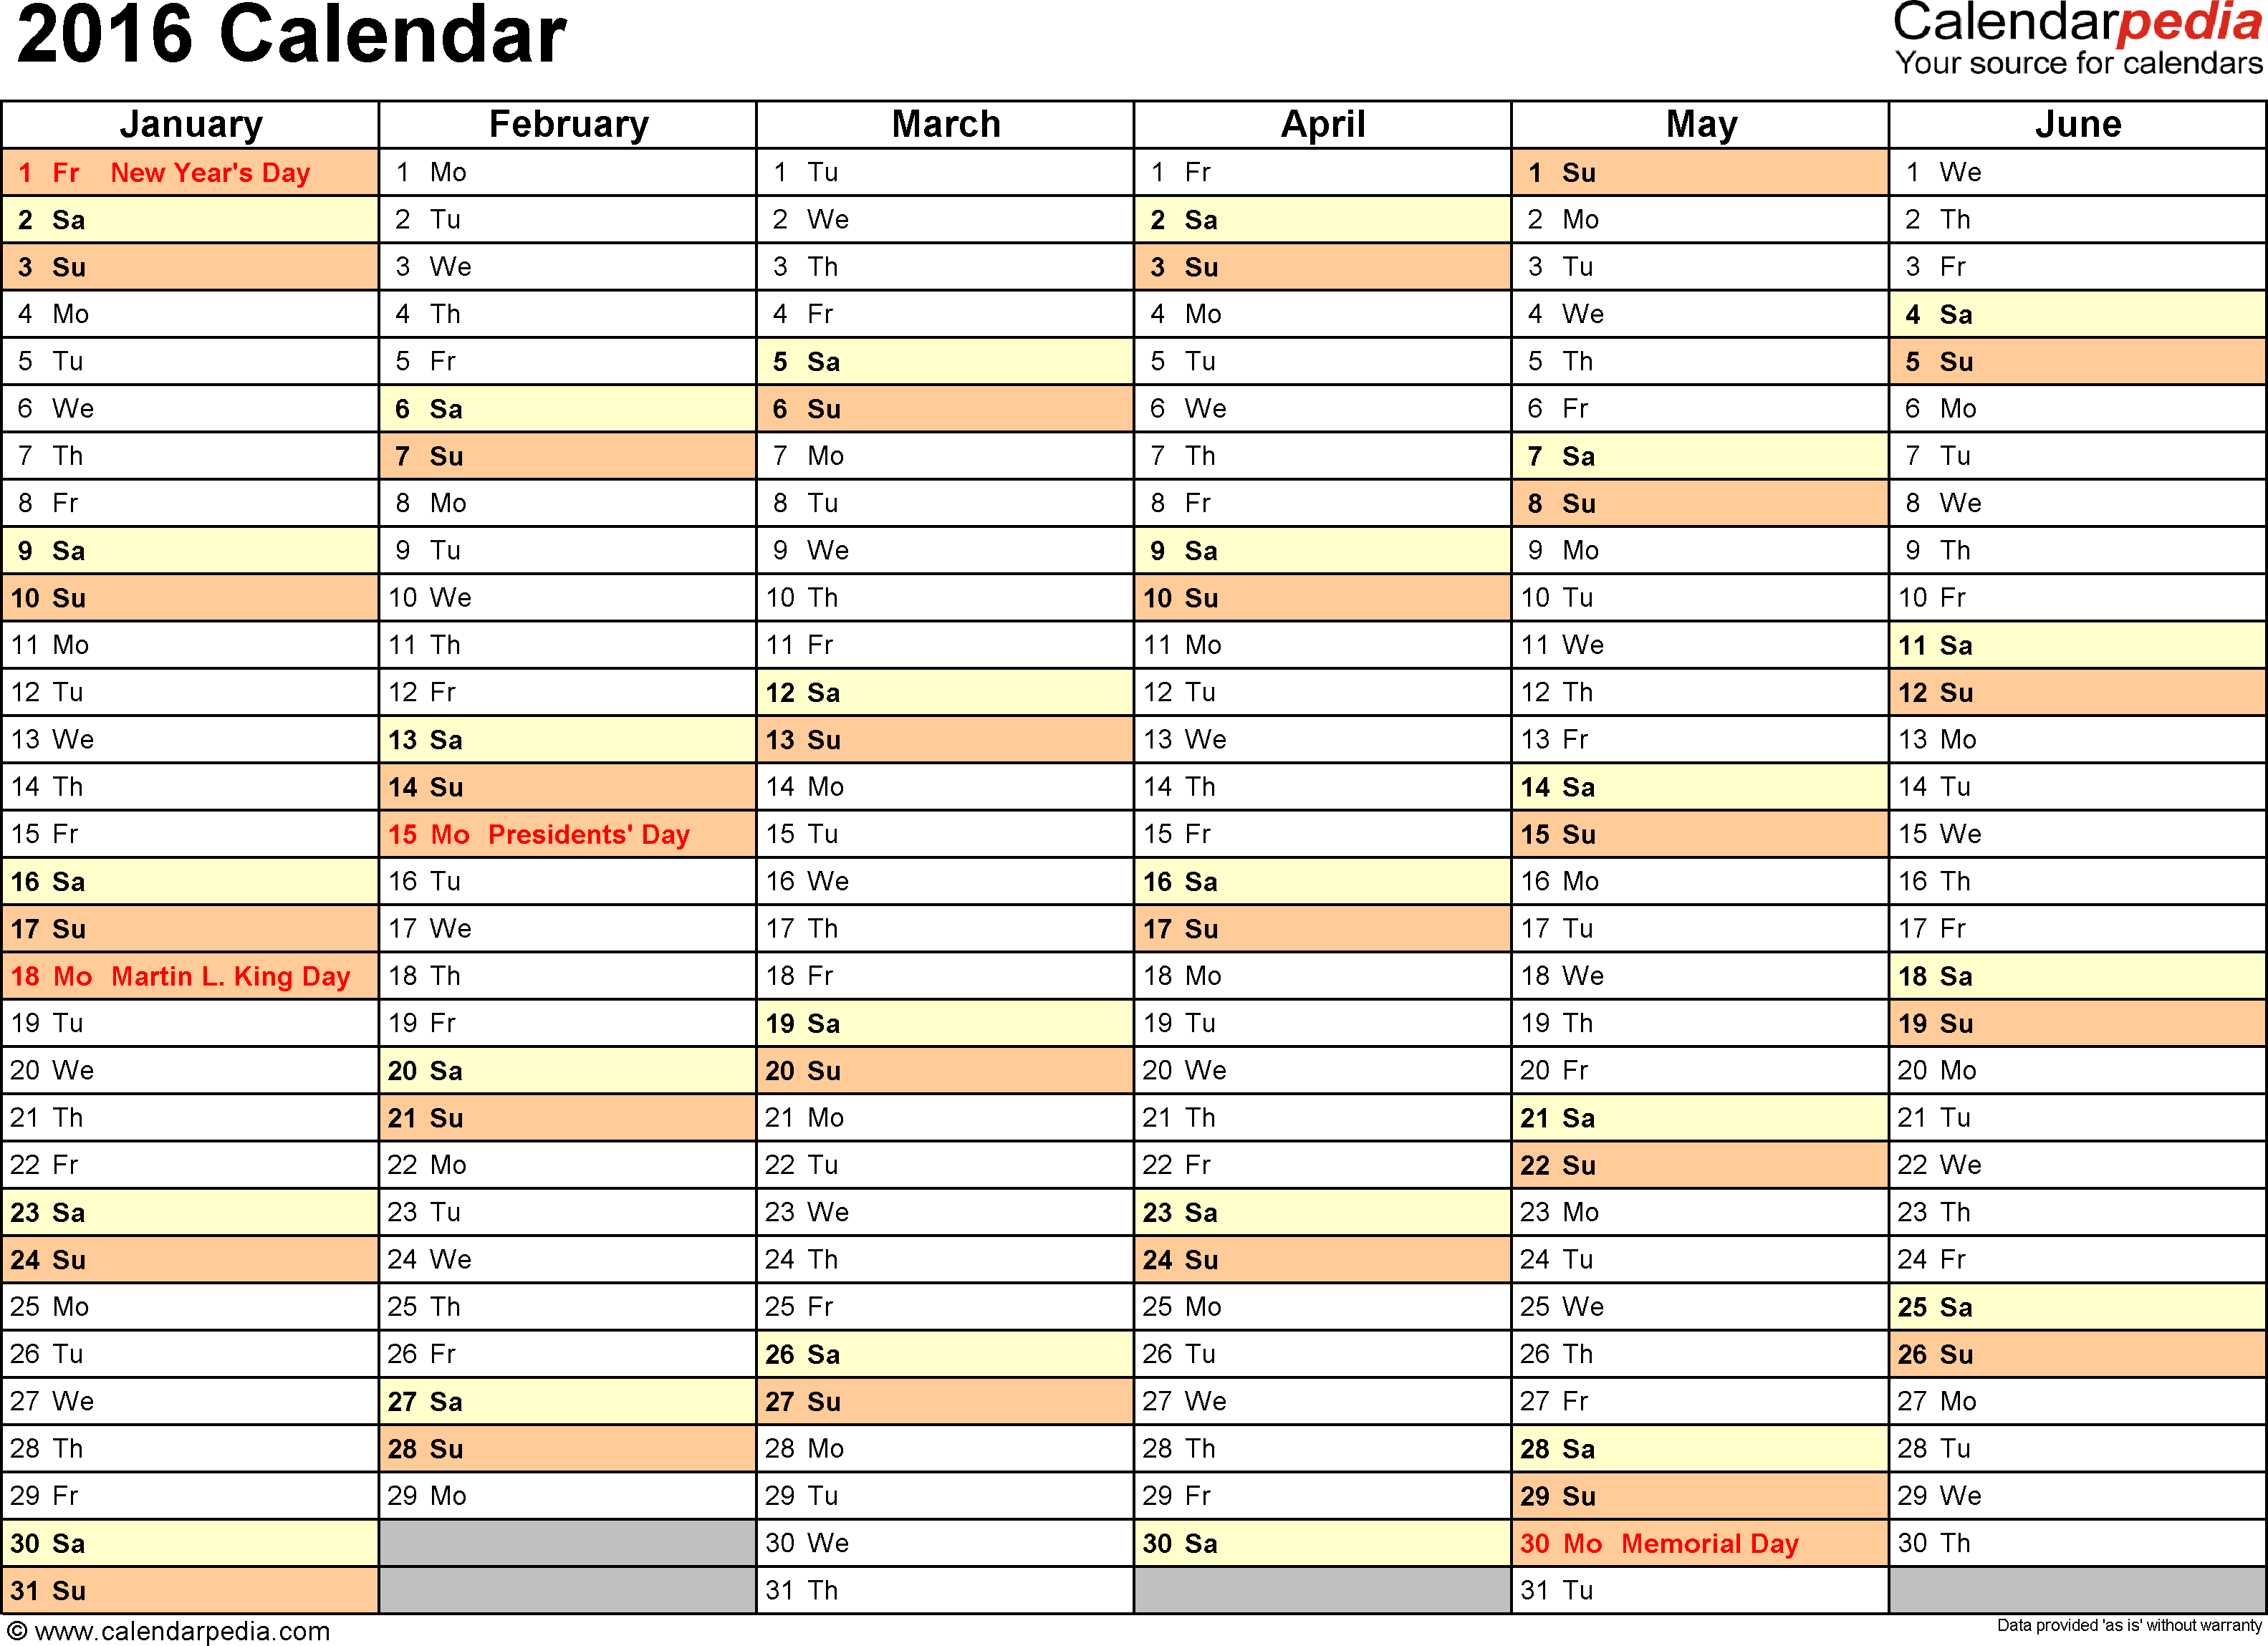 Ediblewildsus  Terrific  Calendar  Download  Free Printable Excel Templates Xls With Outstanding Template   Calendar For Excel Months Horizontally  Pages Landscape Orientation With Amusing Excel  Chart Title Also How To Set Up Macros In Excel In Addition Excel For Beginners Youtube And Vba Excel Training As Well As How To Calculate Payment In Excel Additionally Excel Word Search From Calendarpediacom With Ediblewildsus  Outstanding  Calendar  Download  Free Printable Excel Templates Xls With Amusing Template   Calendar For Excel Months Horizontally  Pages Landscape Orientation And Terrific Excel  Chart Title Also How To Set Up Macros In Excel In Addition Excel For Beginners Youtube From Calendarpediacom